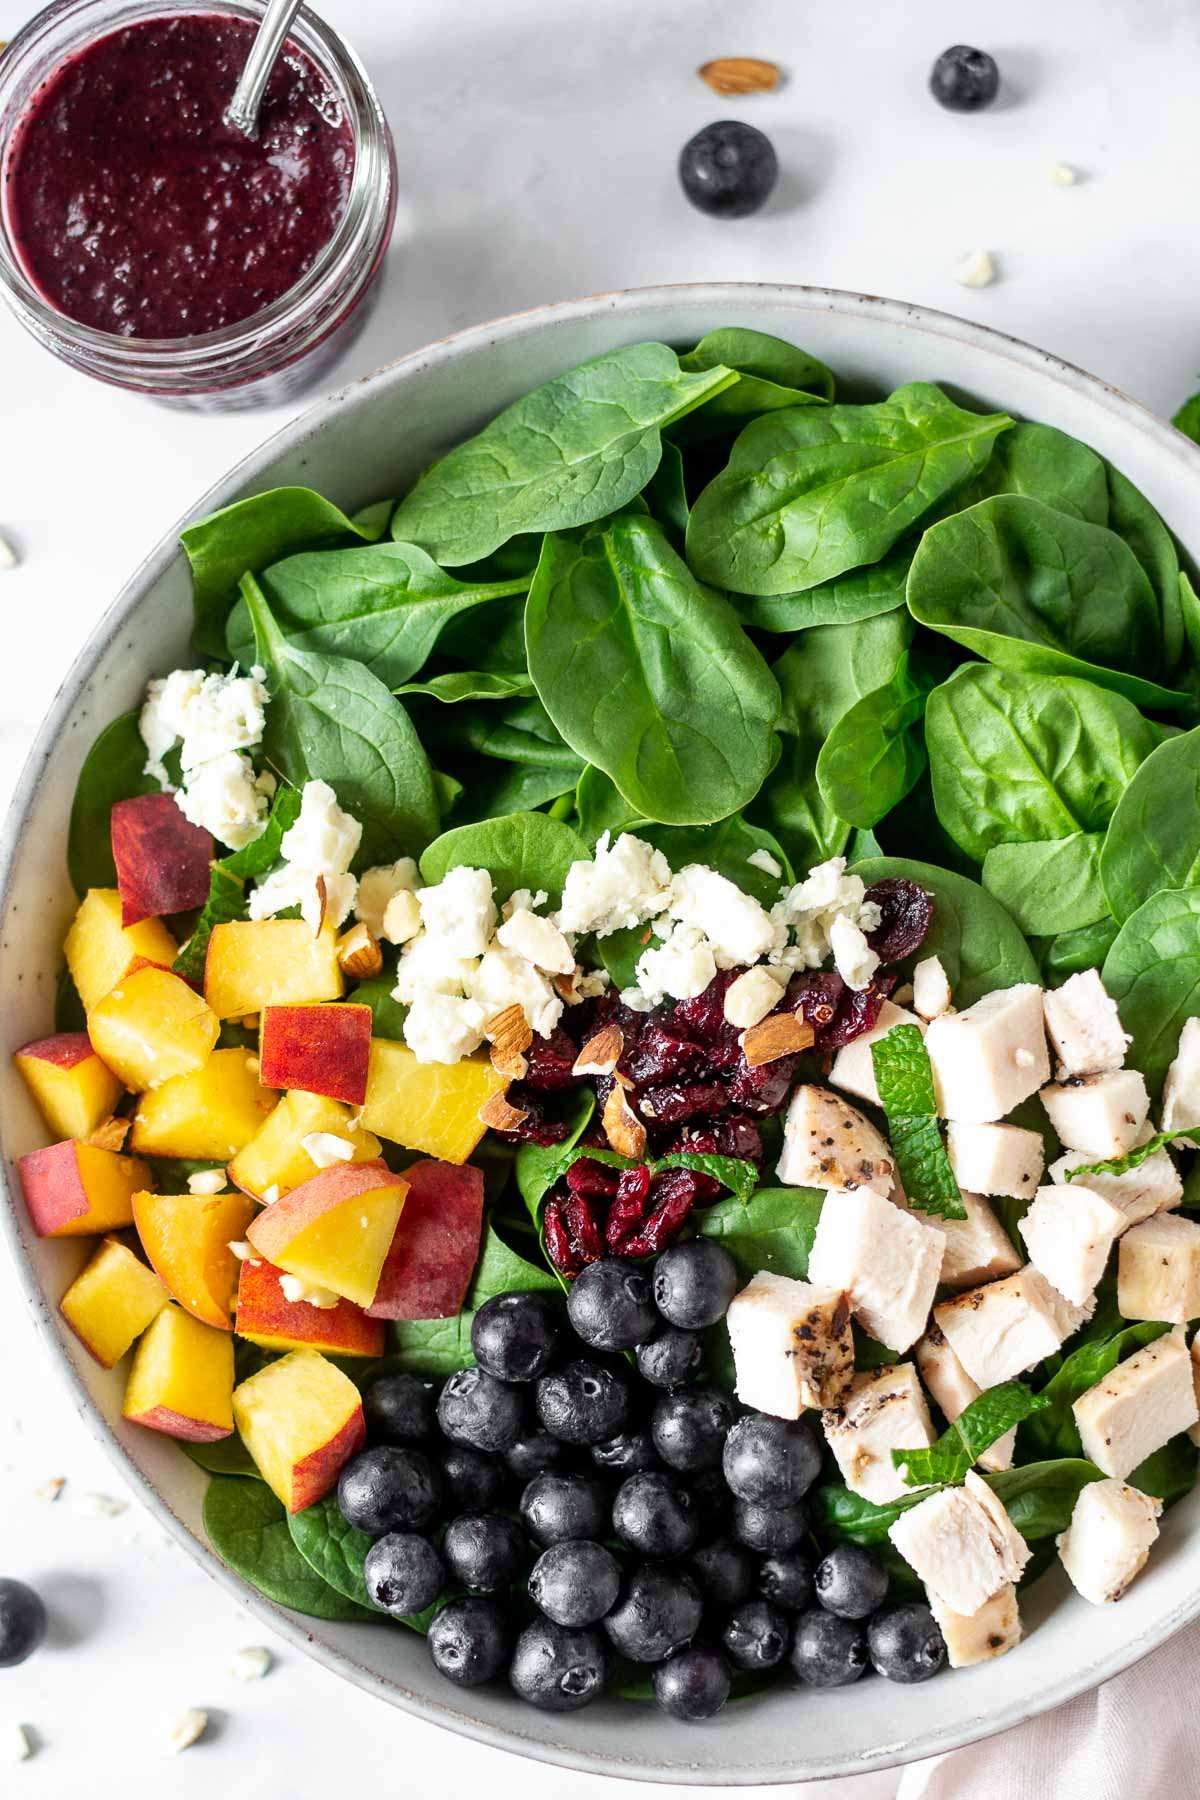 Blueberry and peach salad with the blueberry dressing in a jar.